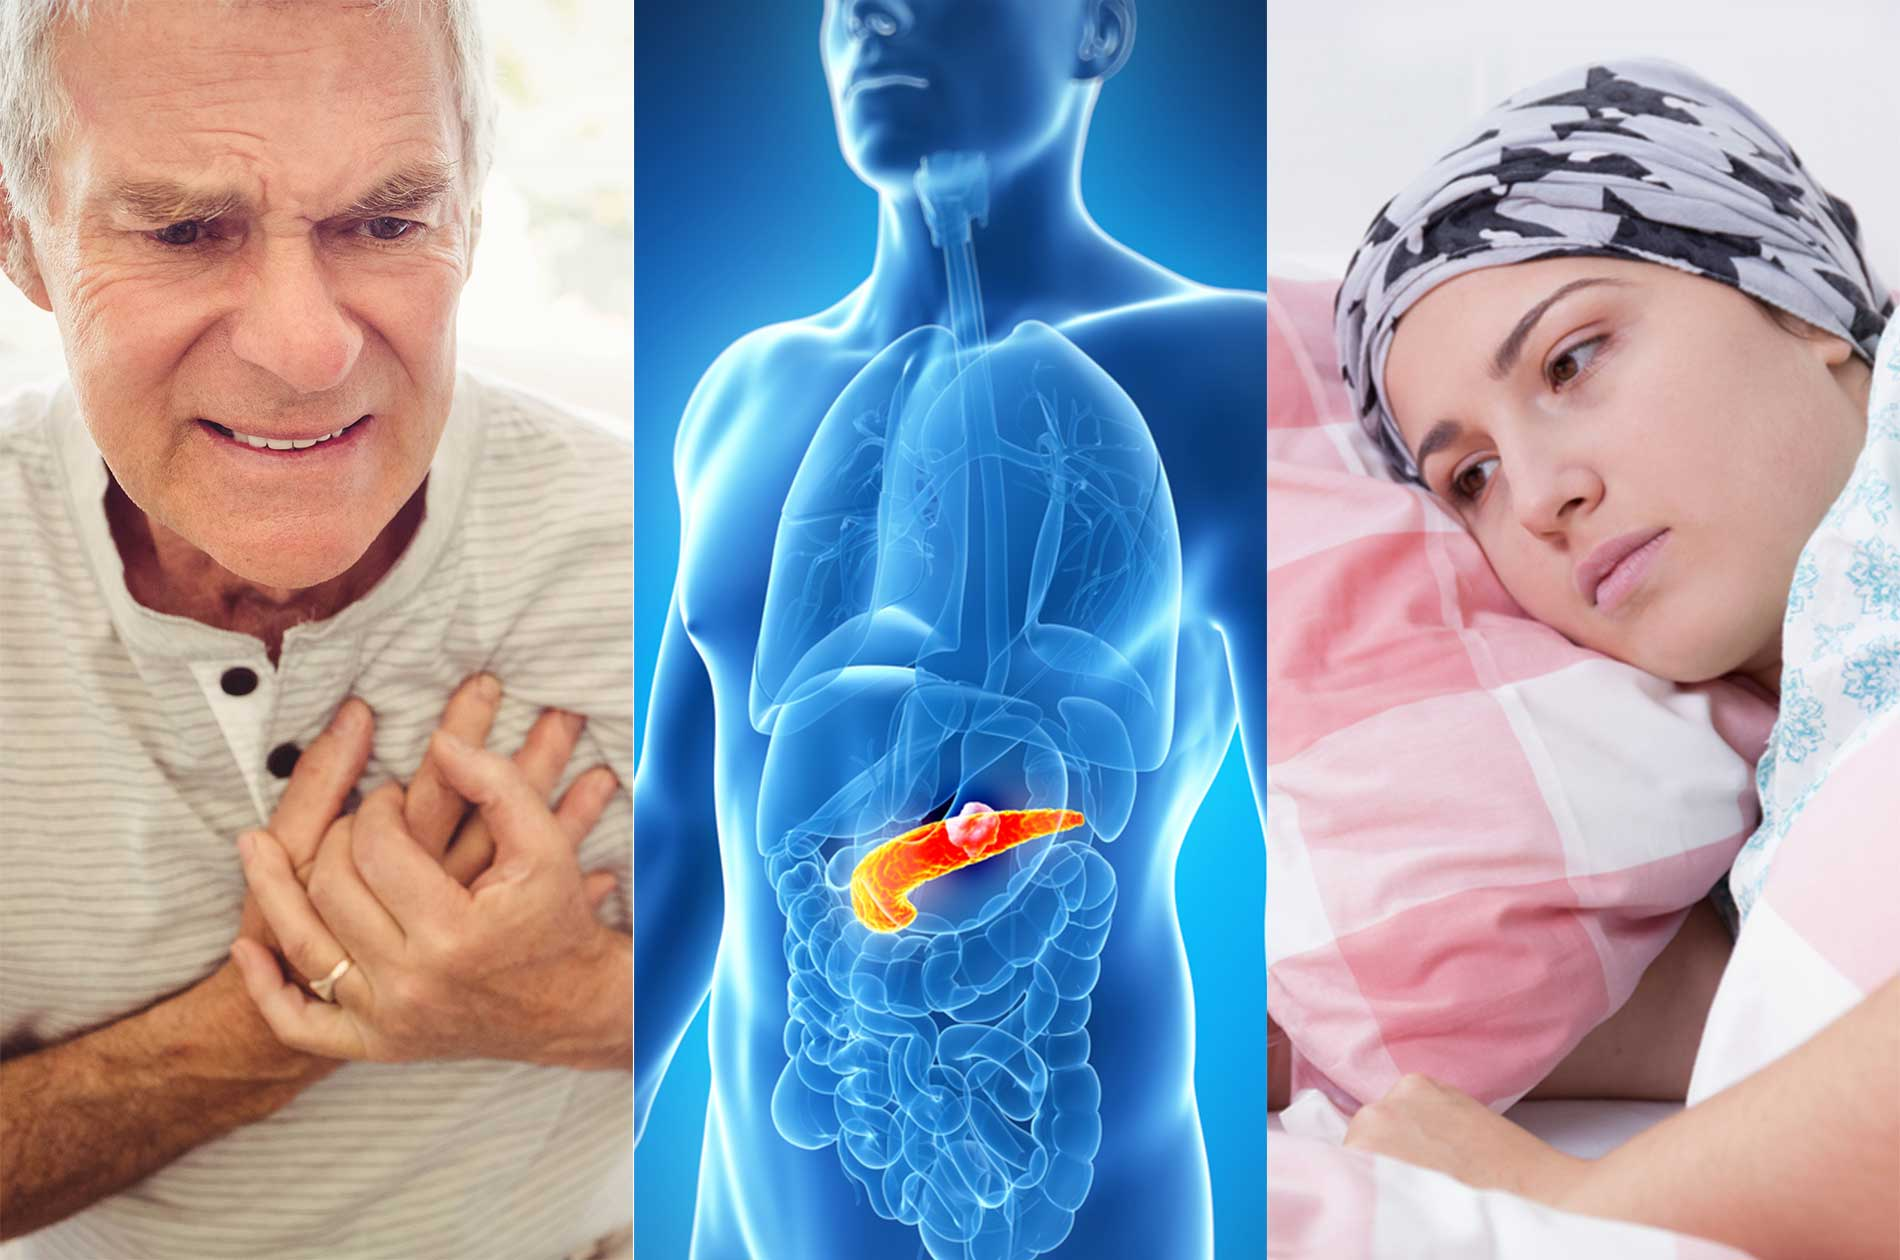 A man clutching his chest, an illustration of the pancreas, and an ill-looking woman.